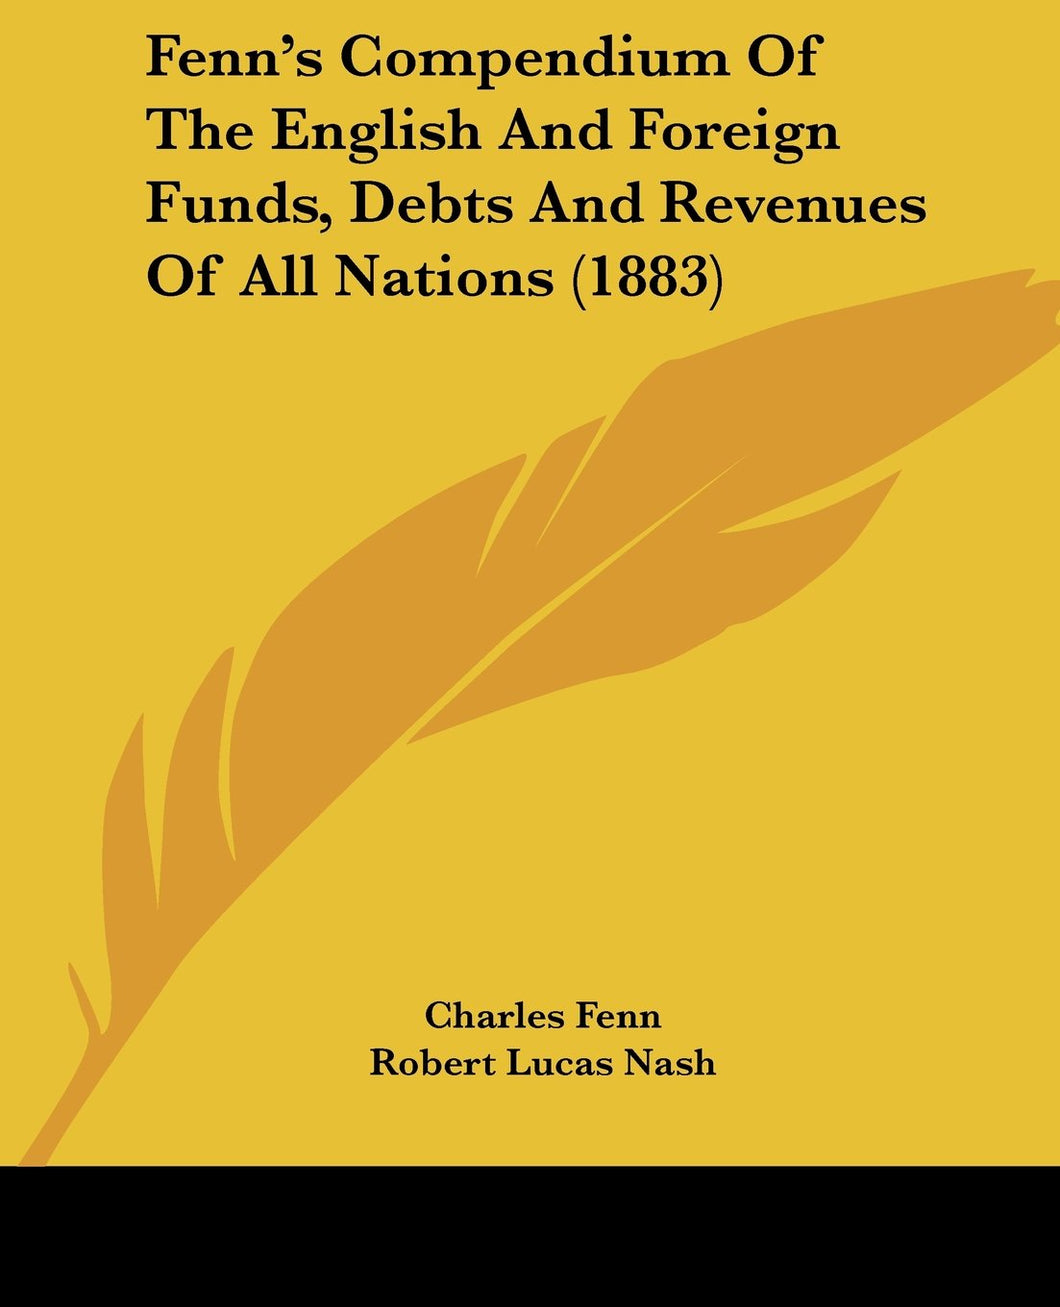 Fenn's Compendium of the English and Foreign Funds, Debts and Revenues of All Nations (1883)